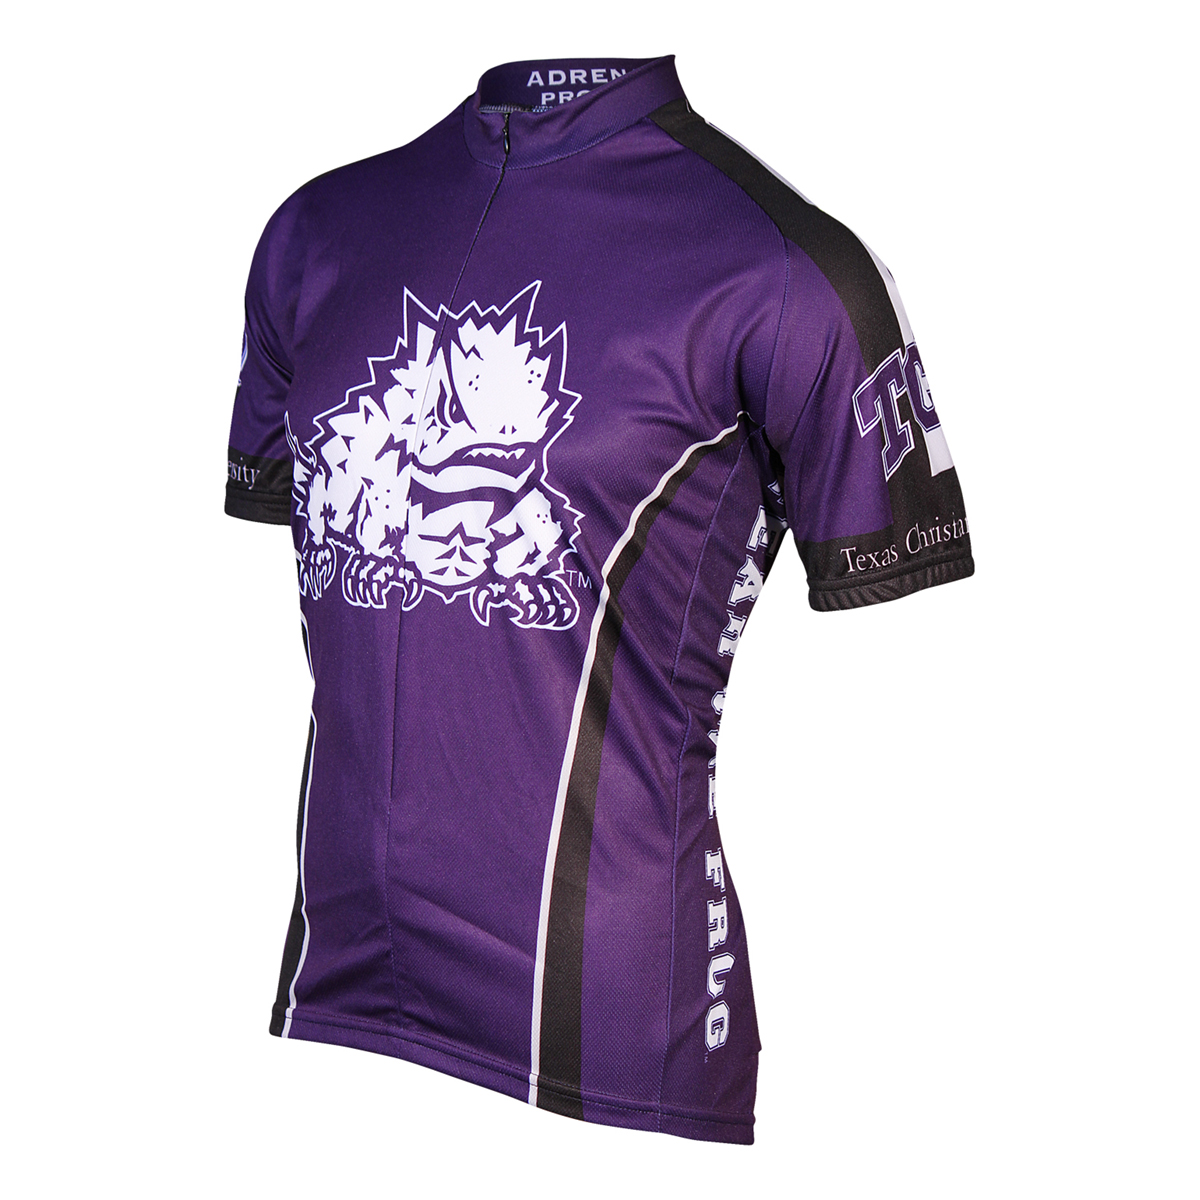 Adrenaline Promotions Texas Christian University Horned Frog Cycling Jersey